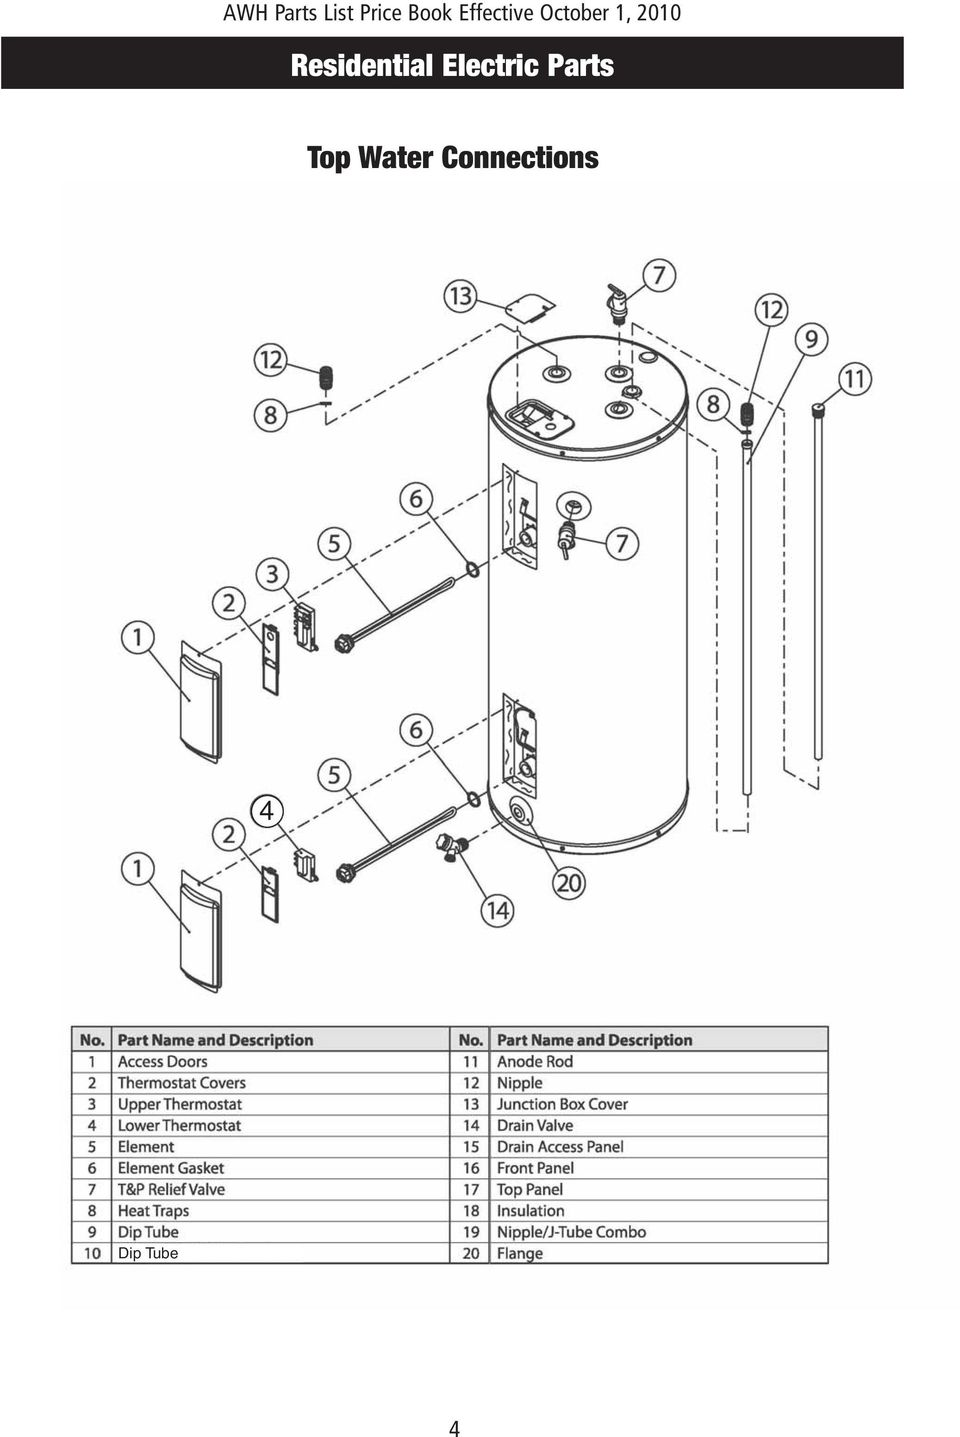 REPLACEMENT PARTS LIST PRICE BOOK Effective with Shipments